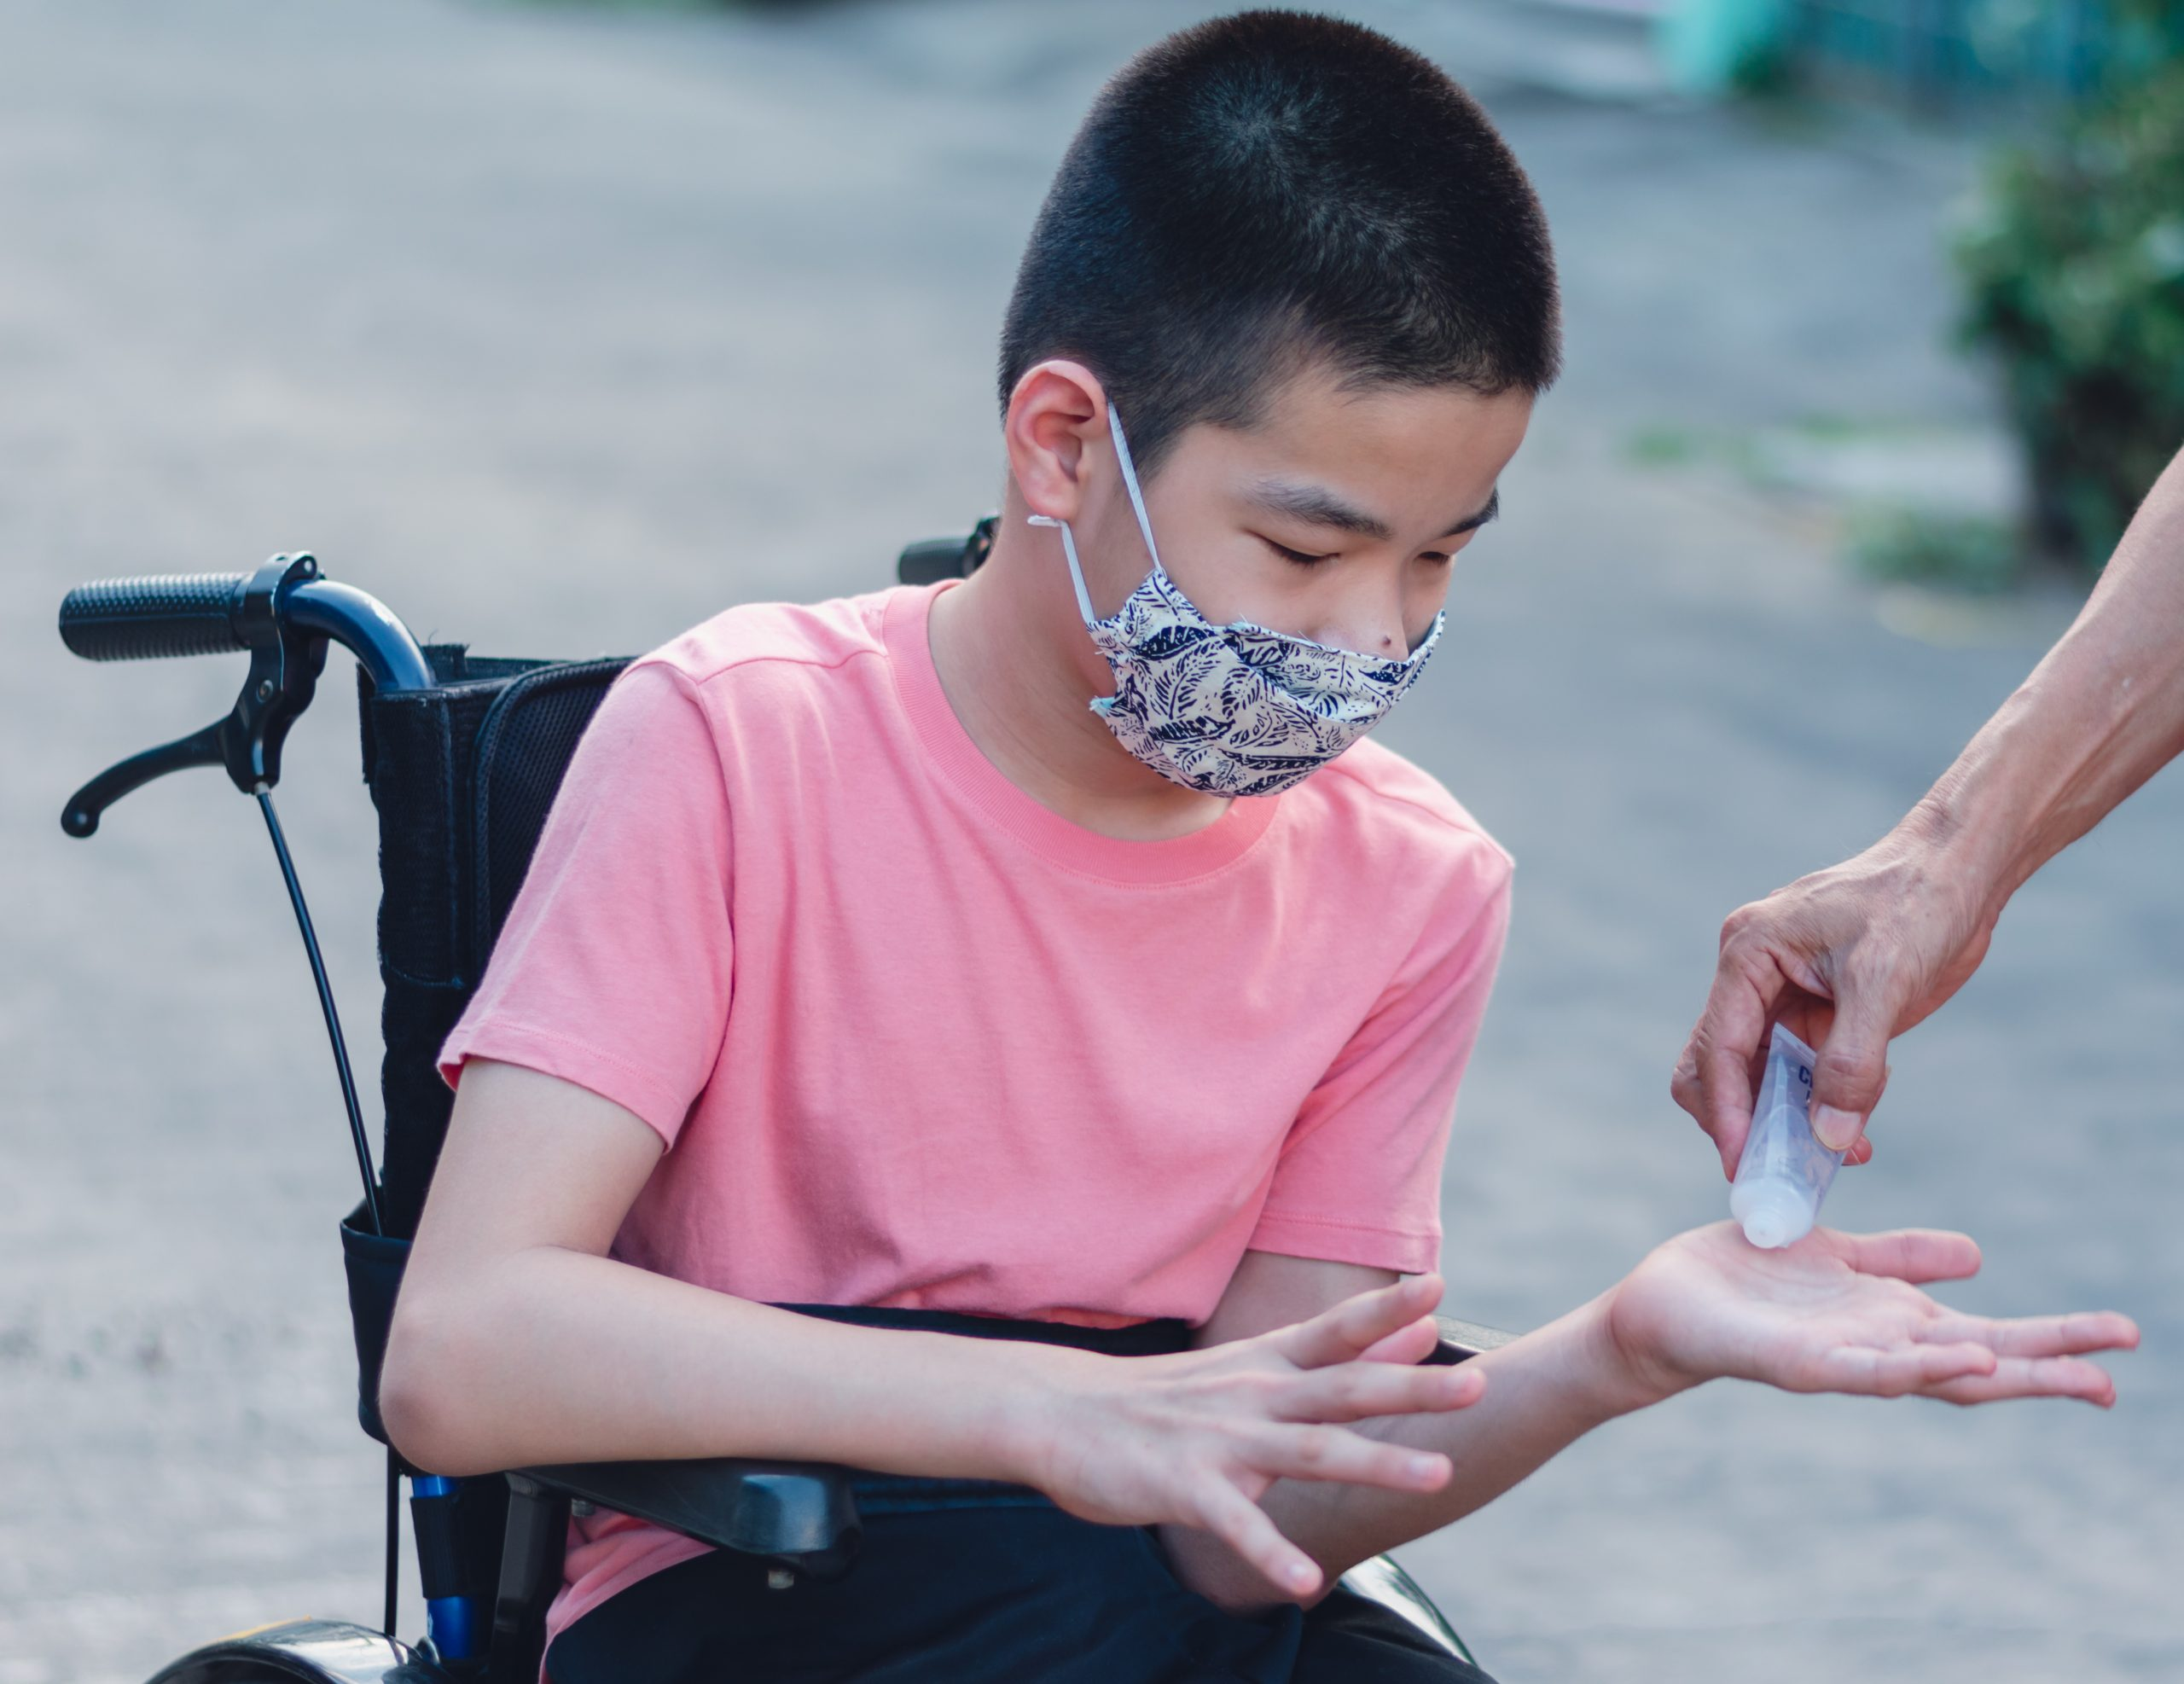 A young boy in a wheel chair receives hand sanitizer